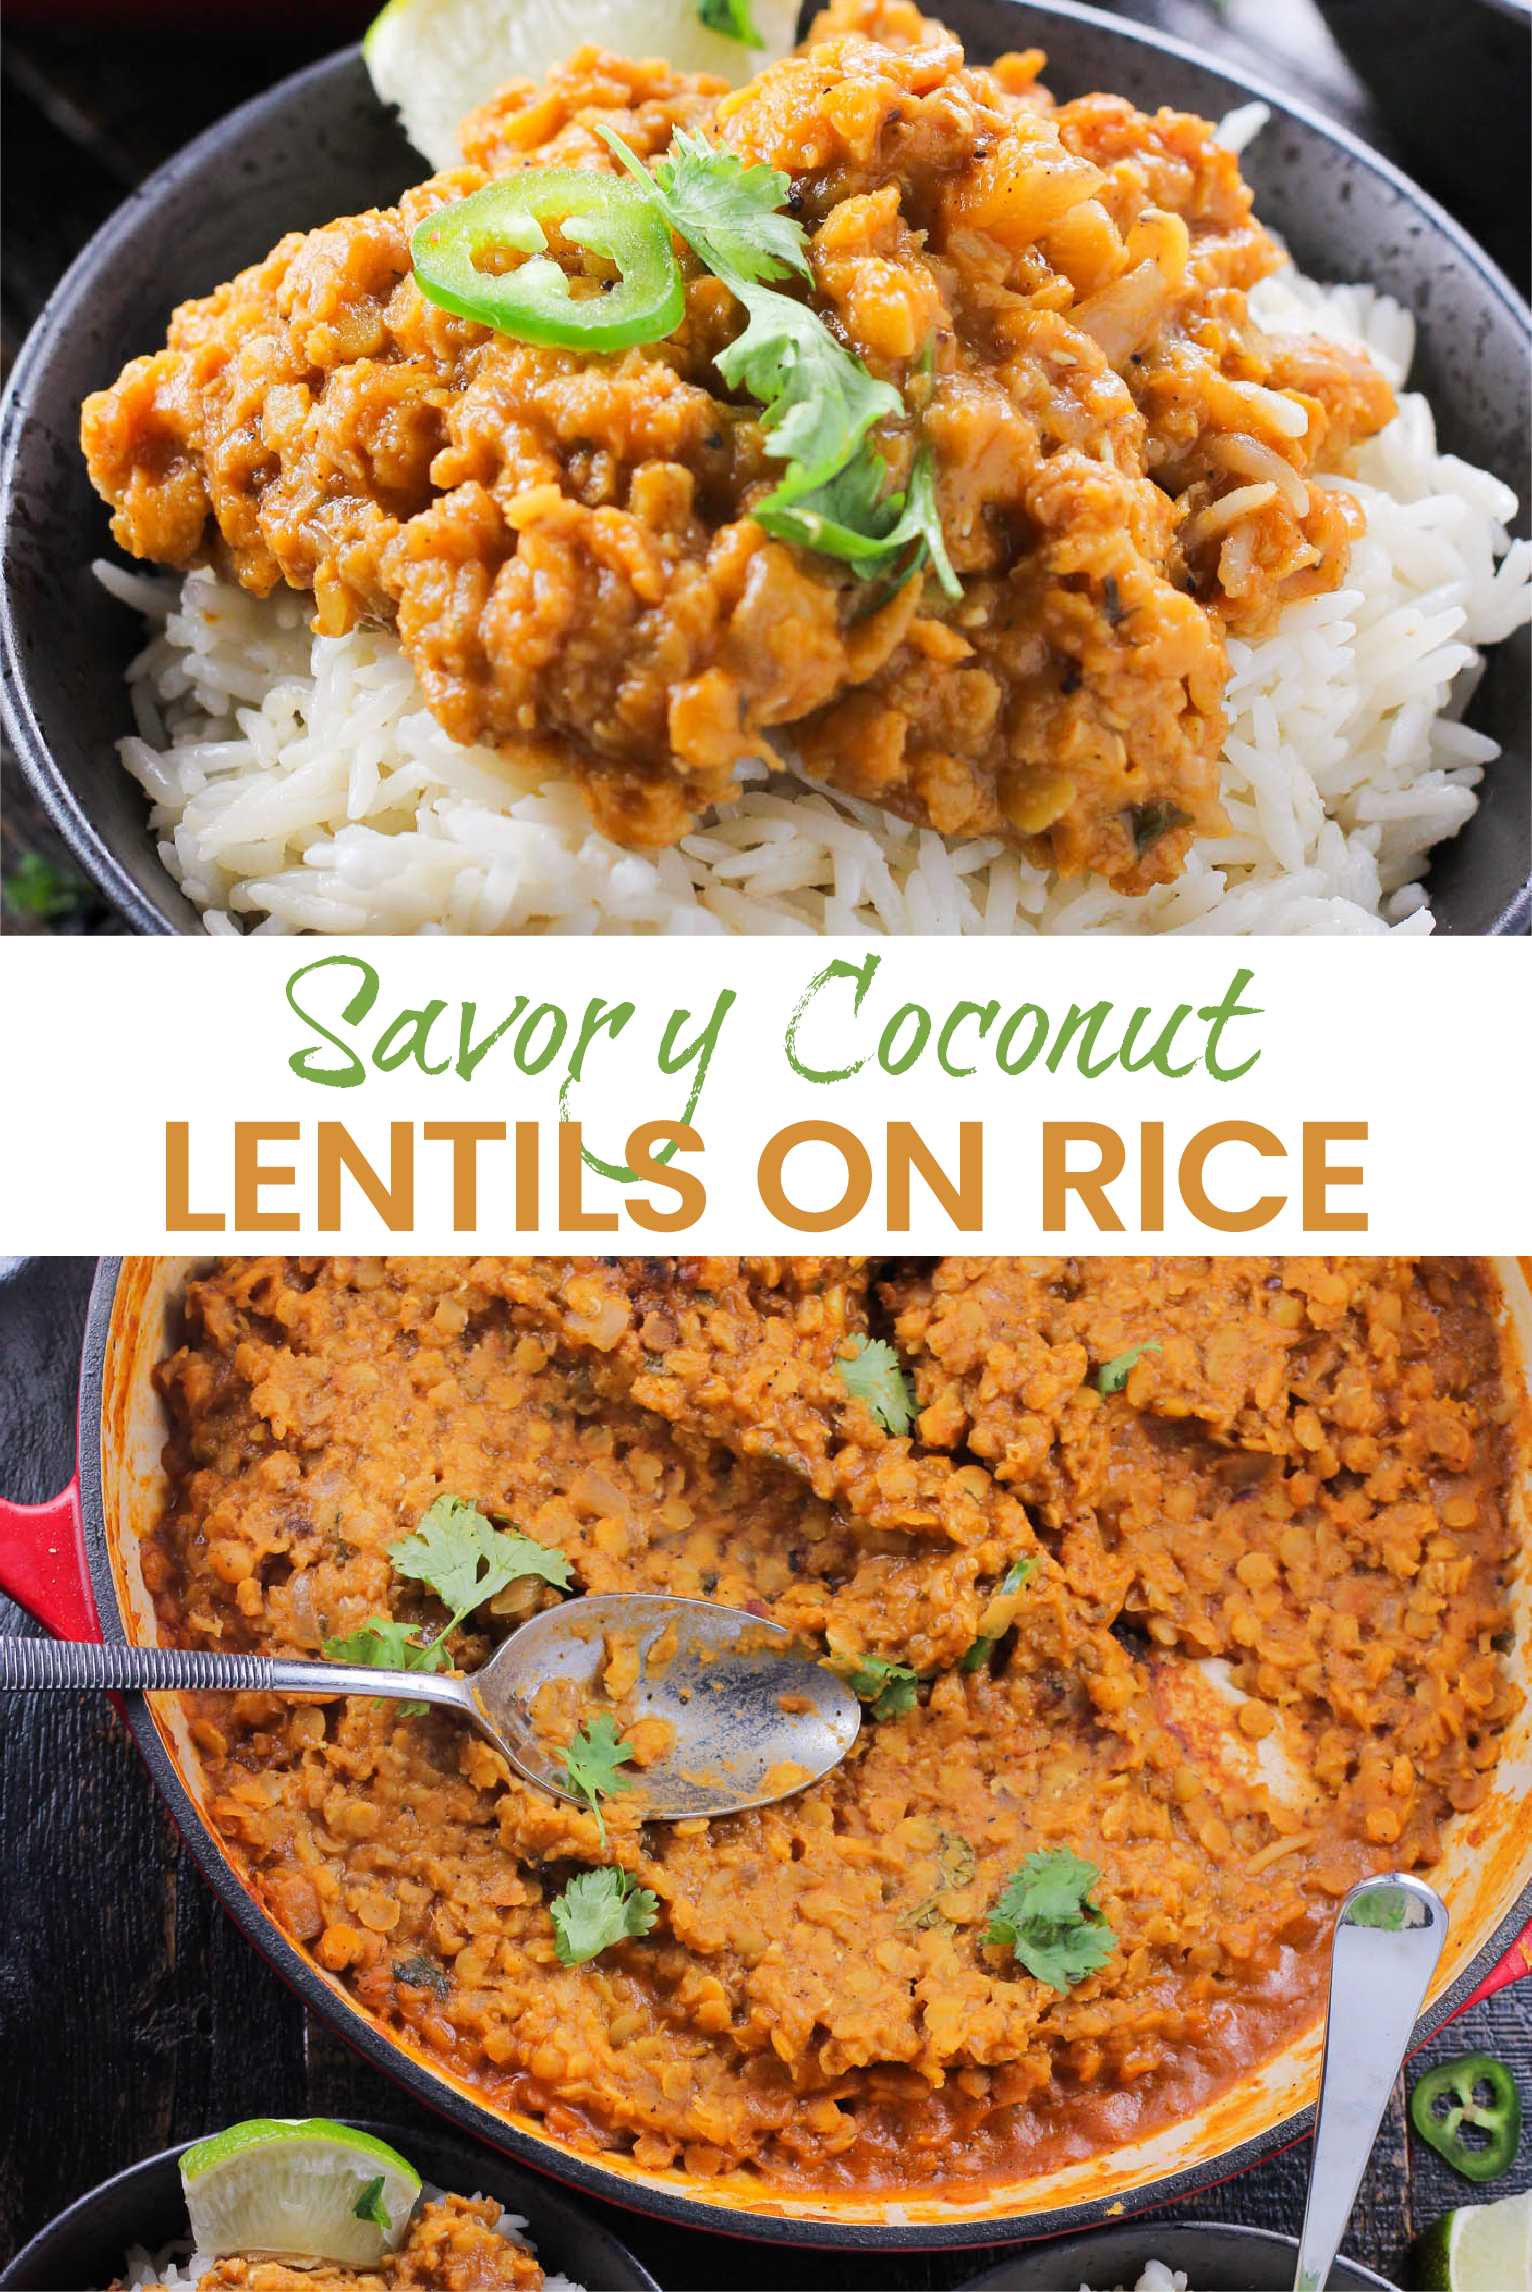 Saucy Coconut Lentils...A One Pot Meal Girl and the